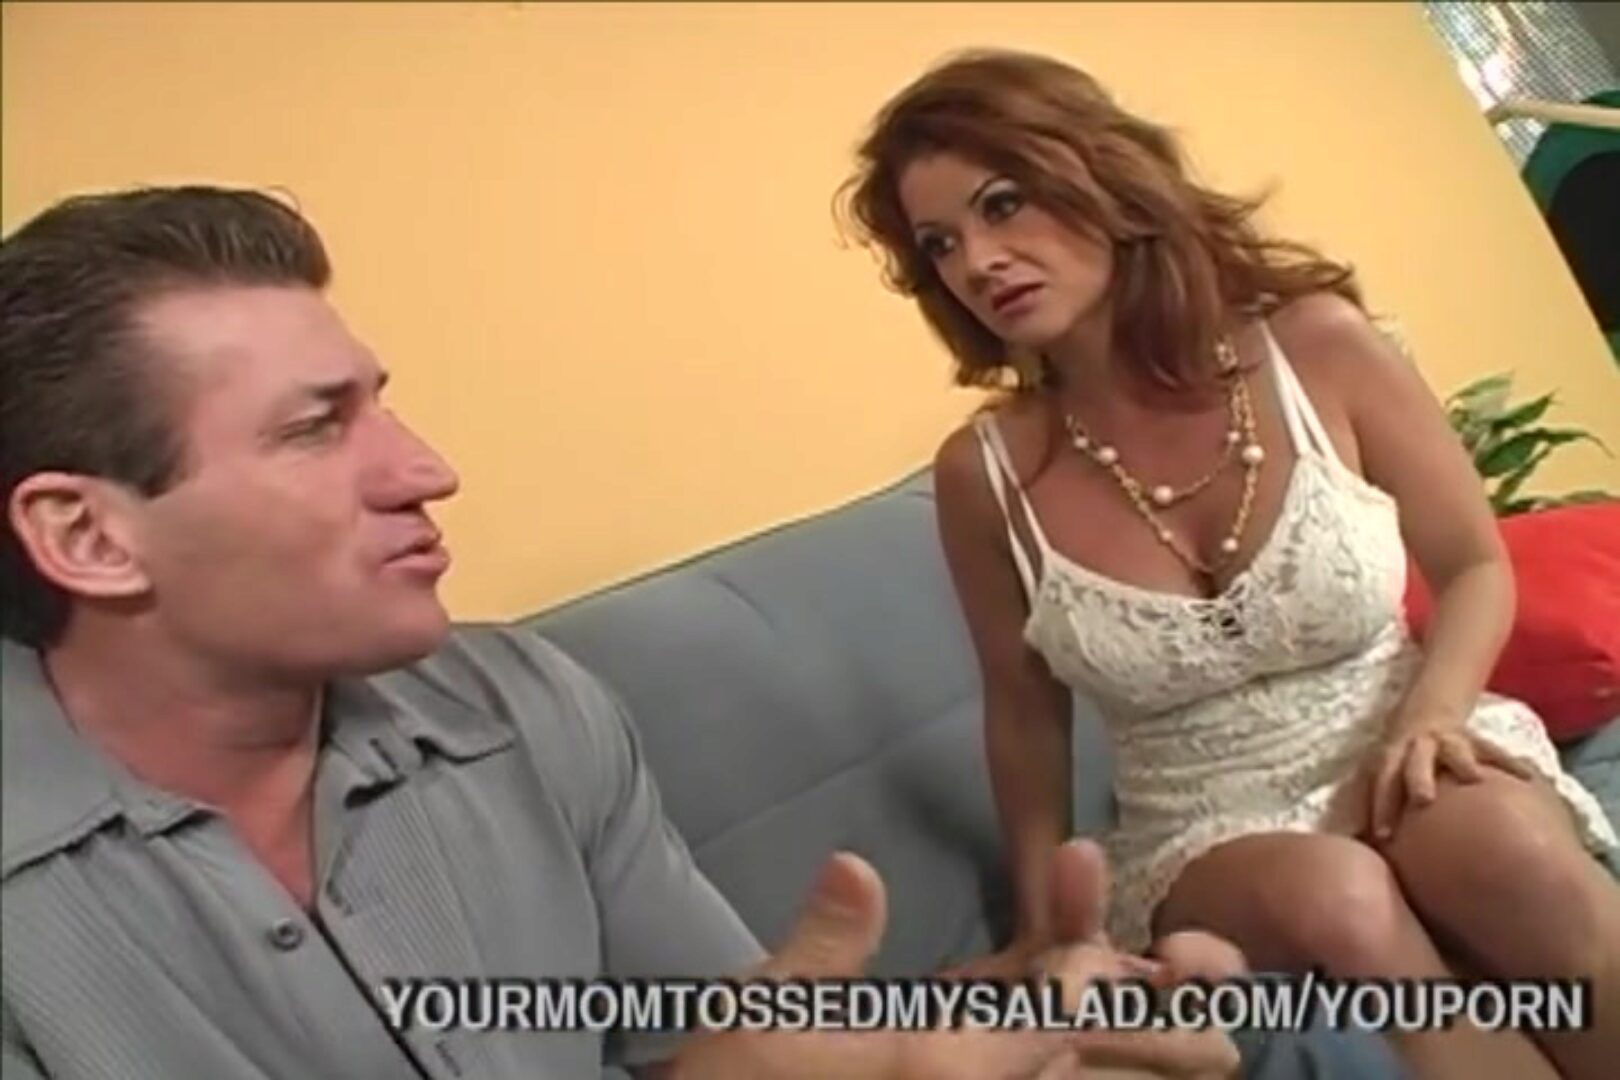 Horny Milf Tossing Studs Salad